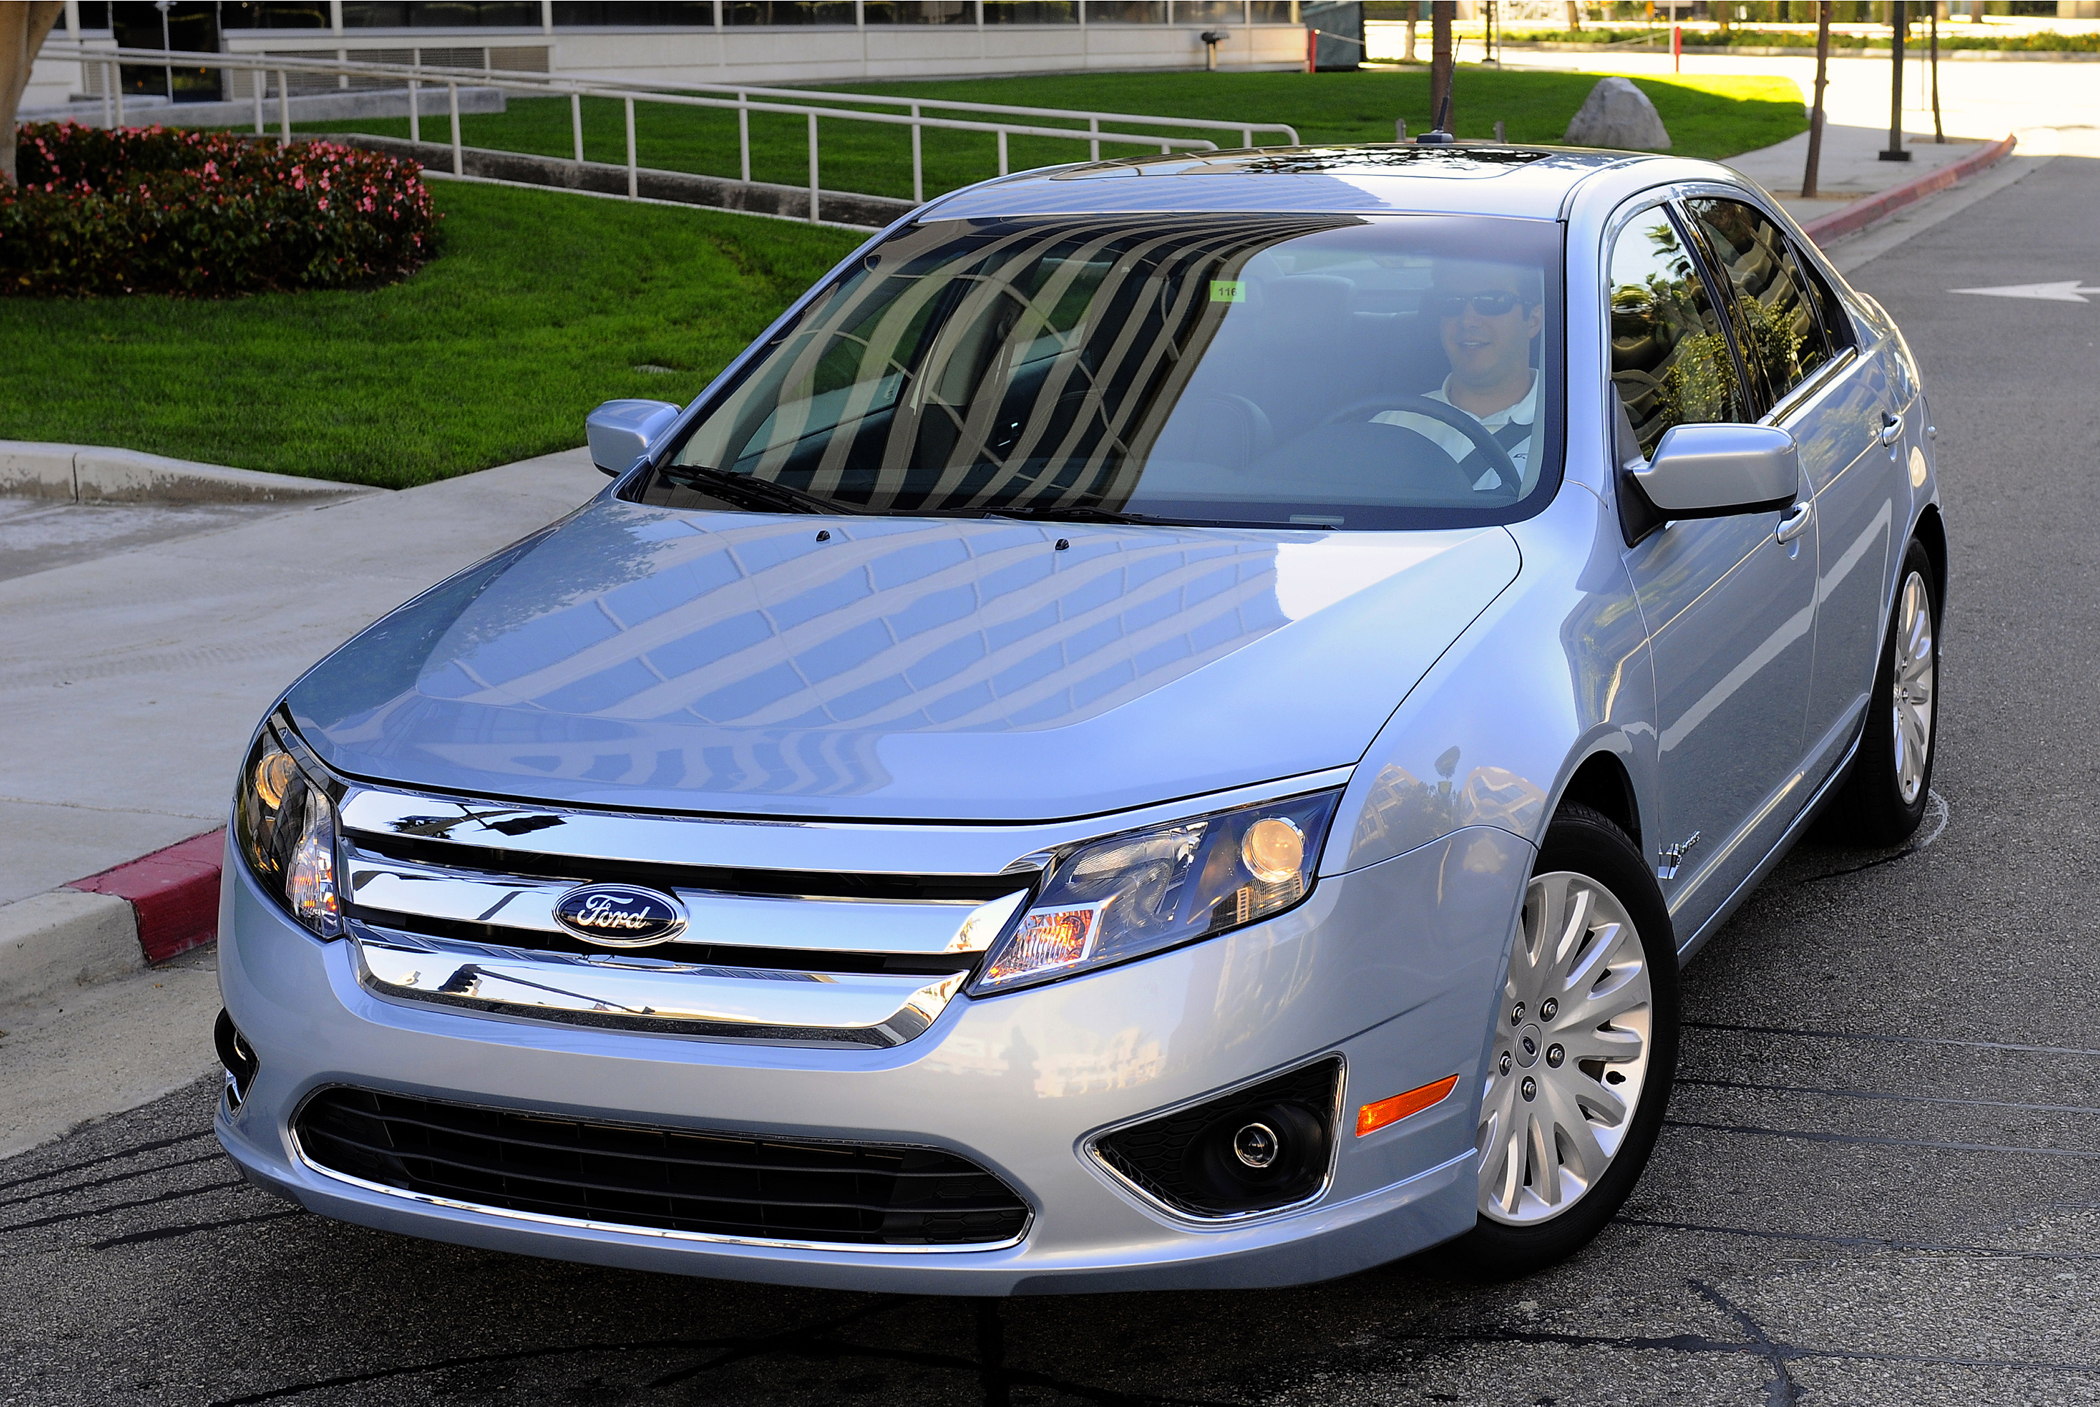 2011 ford fusion hybrid delivers 41 mpg in city driving new on wheels groovecar. Black Bedroom Furniture Sets. Home Design Ideas